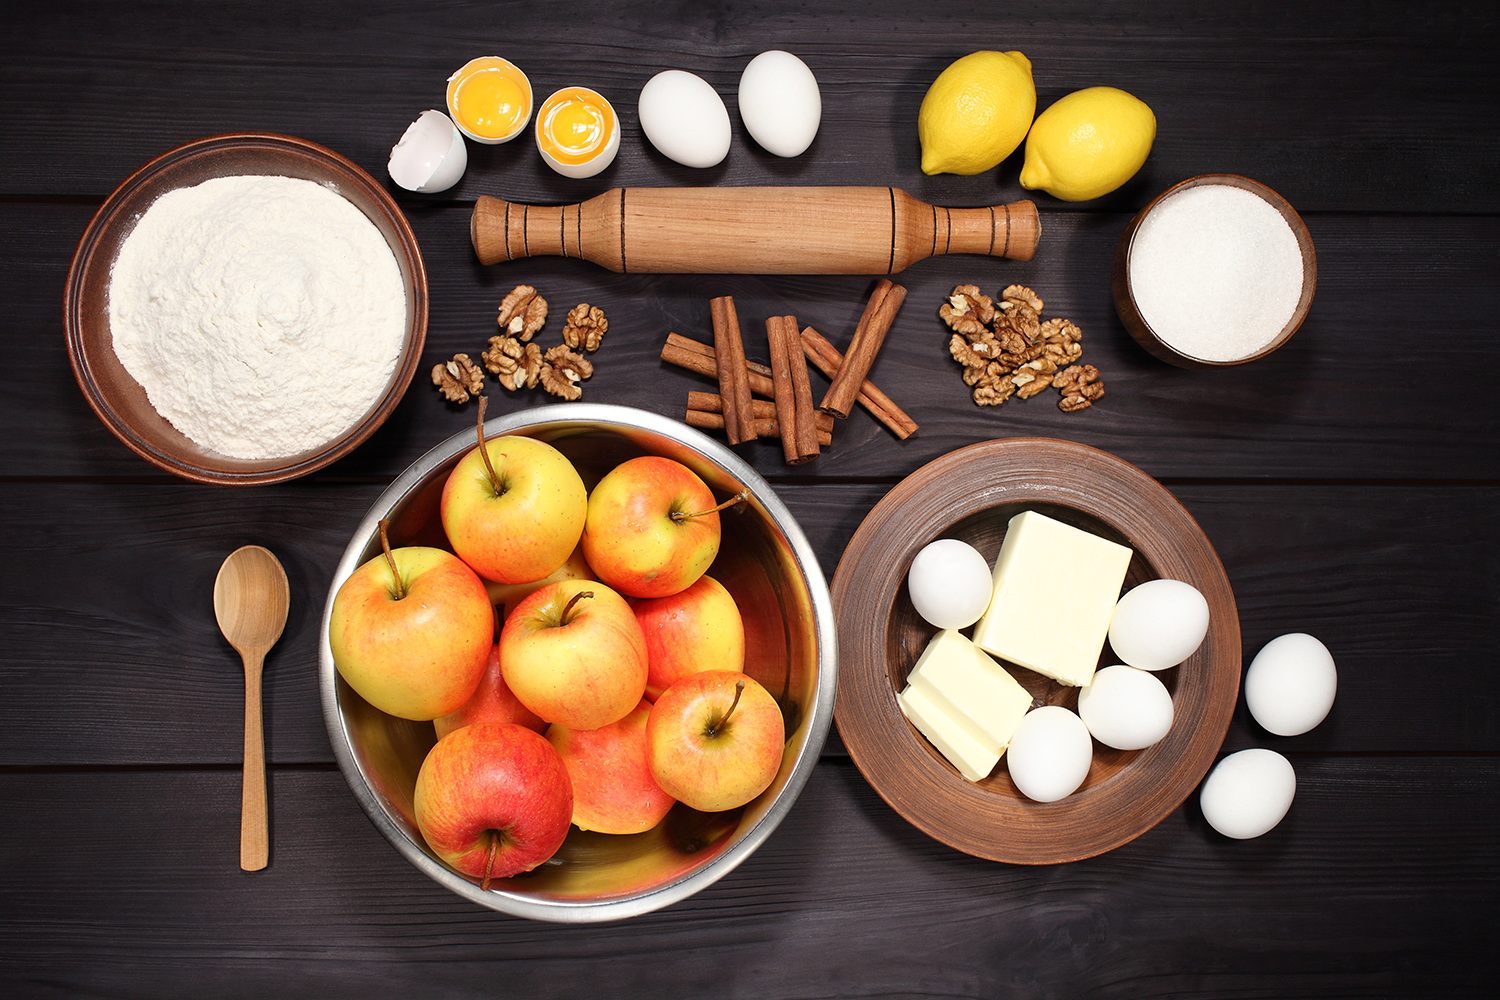 Set 12 photos Apple Pie and raw ingredients for baking. Sweet food series. Dessert. Top view example image 4